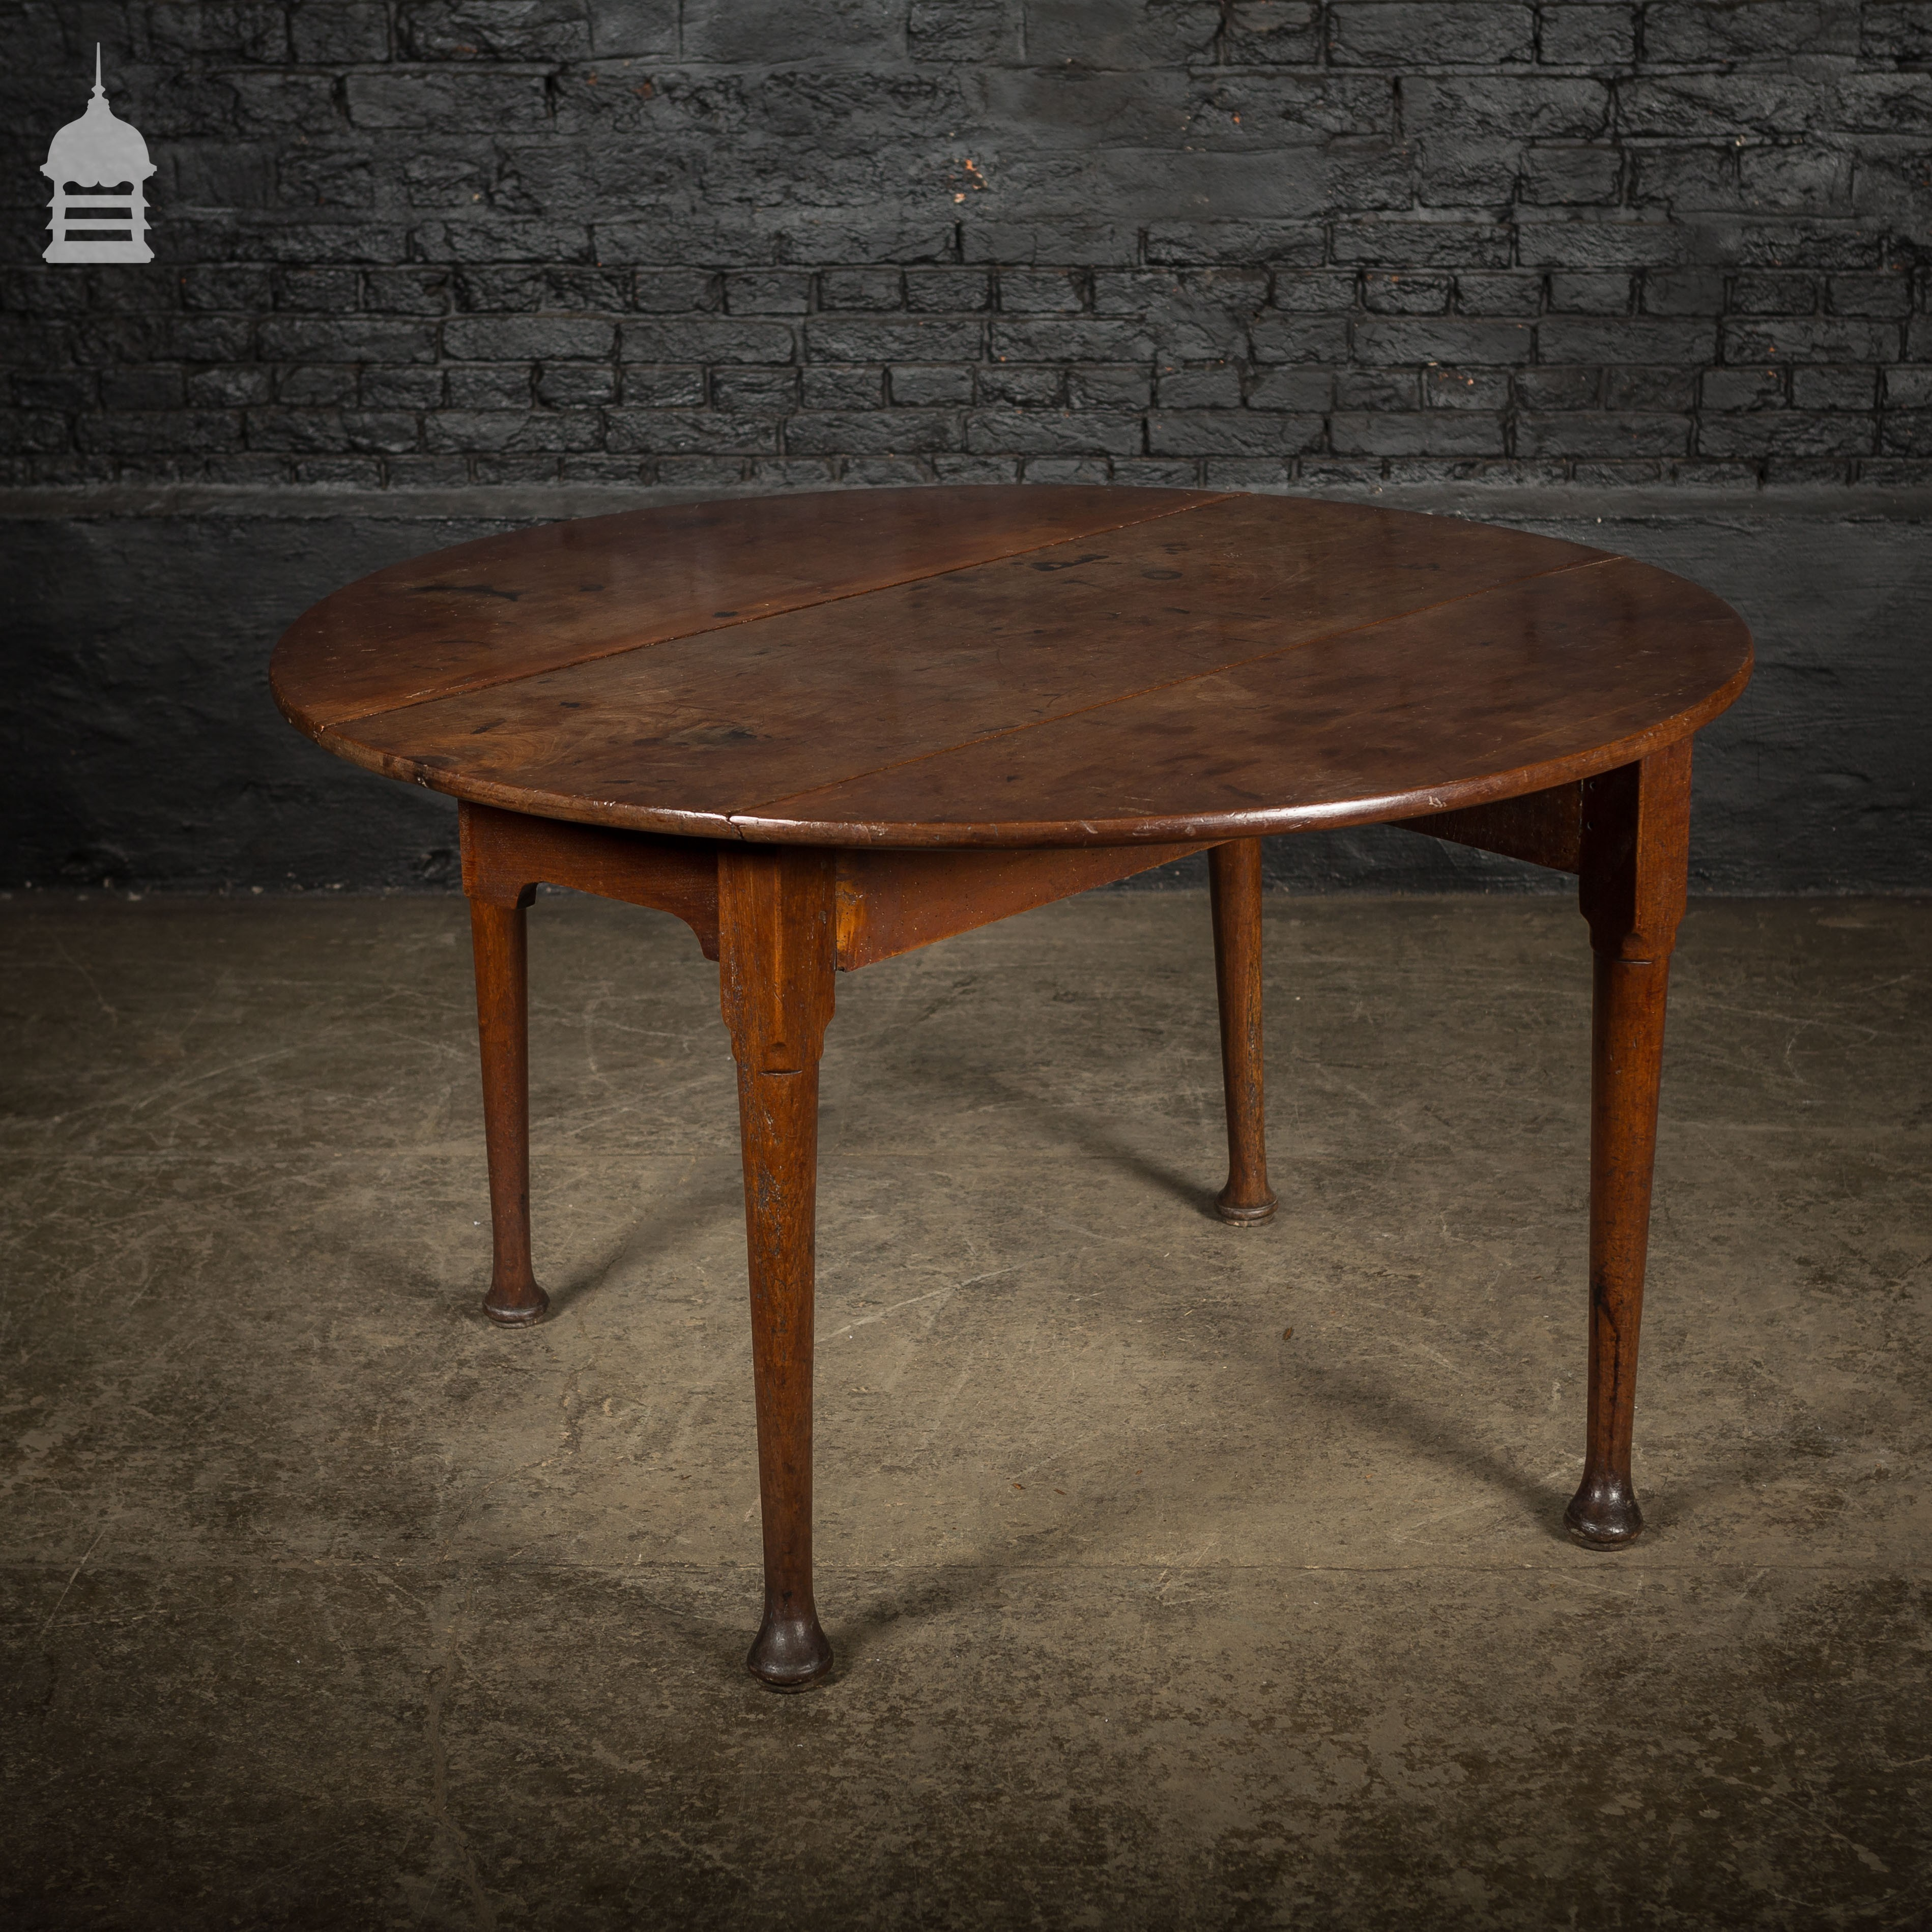 Georgian Round Mahogany Drop Leaf Folding Table With Tapering Legs And Pad Feet Vinterior